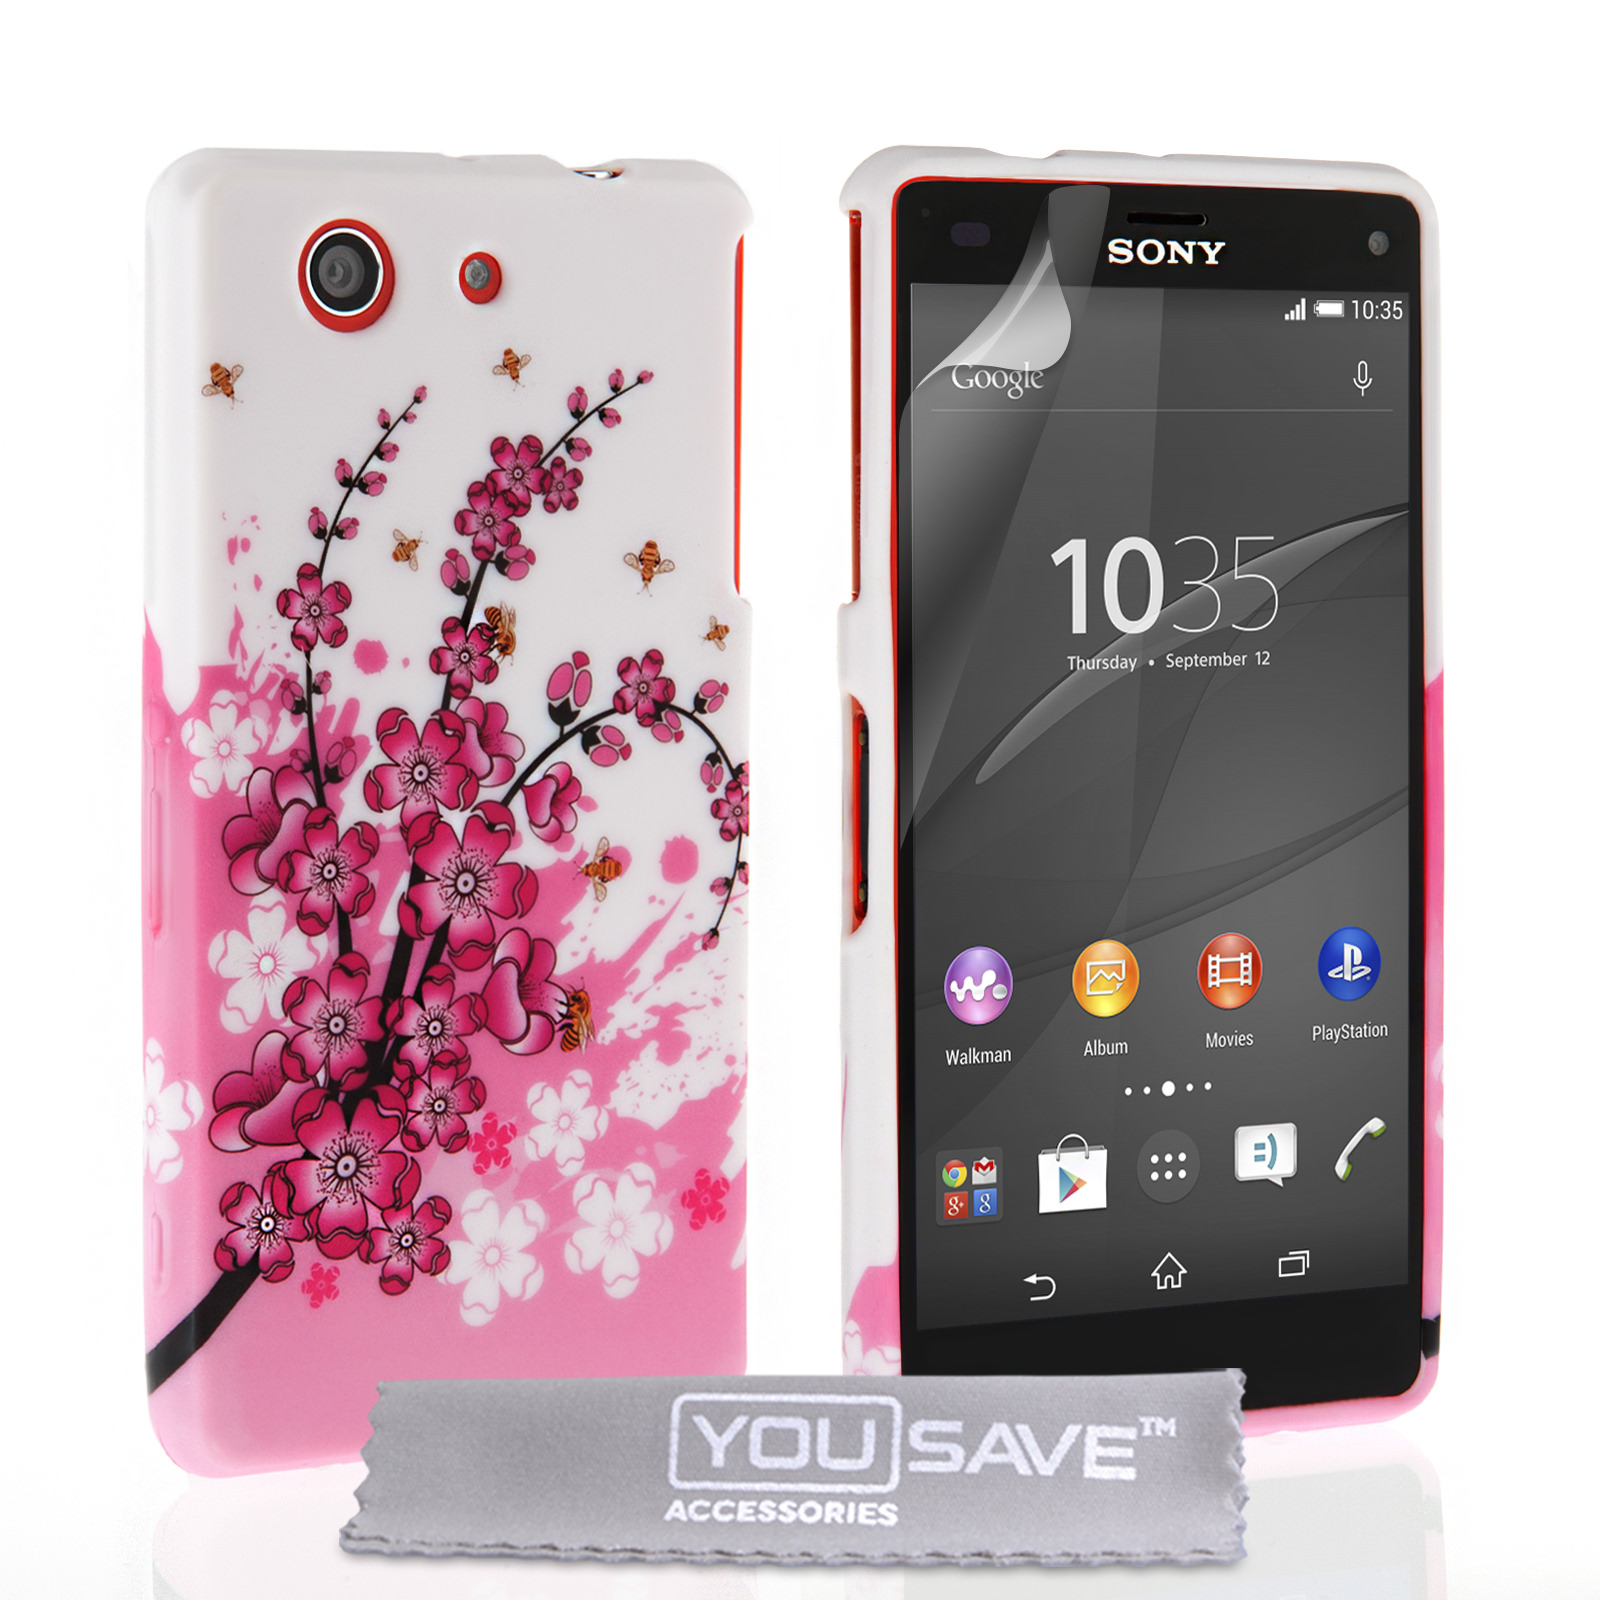 Sony Xperia Z4 pact Floral Bee Silicone Gel Case White